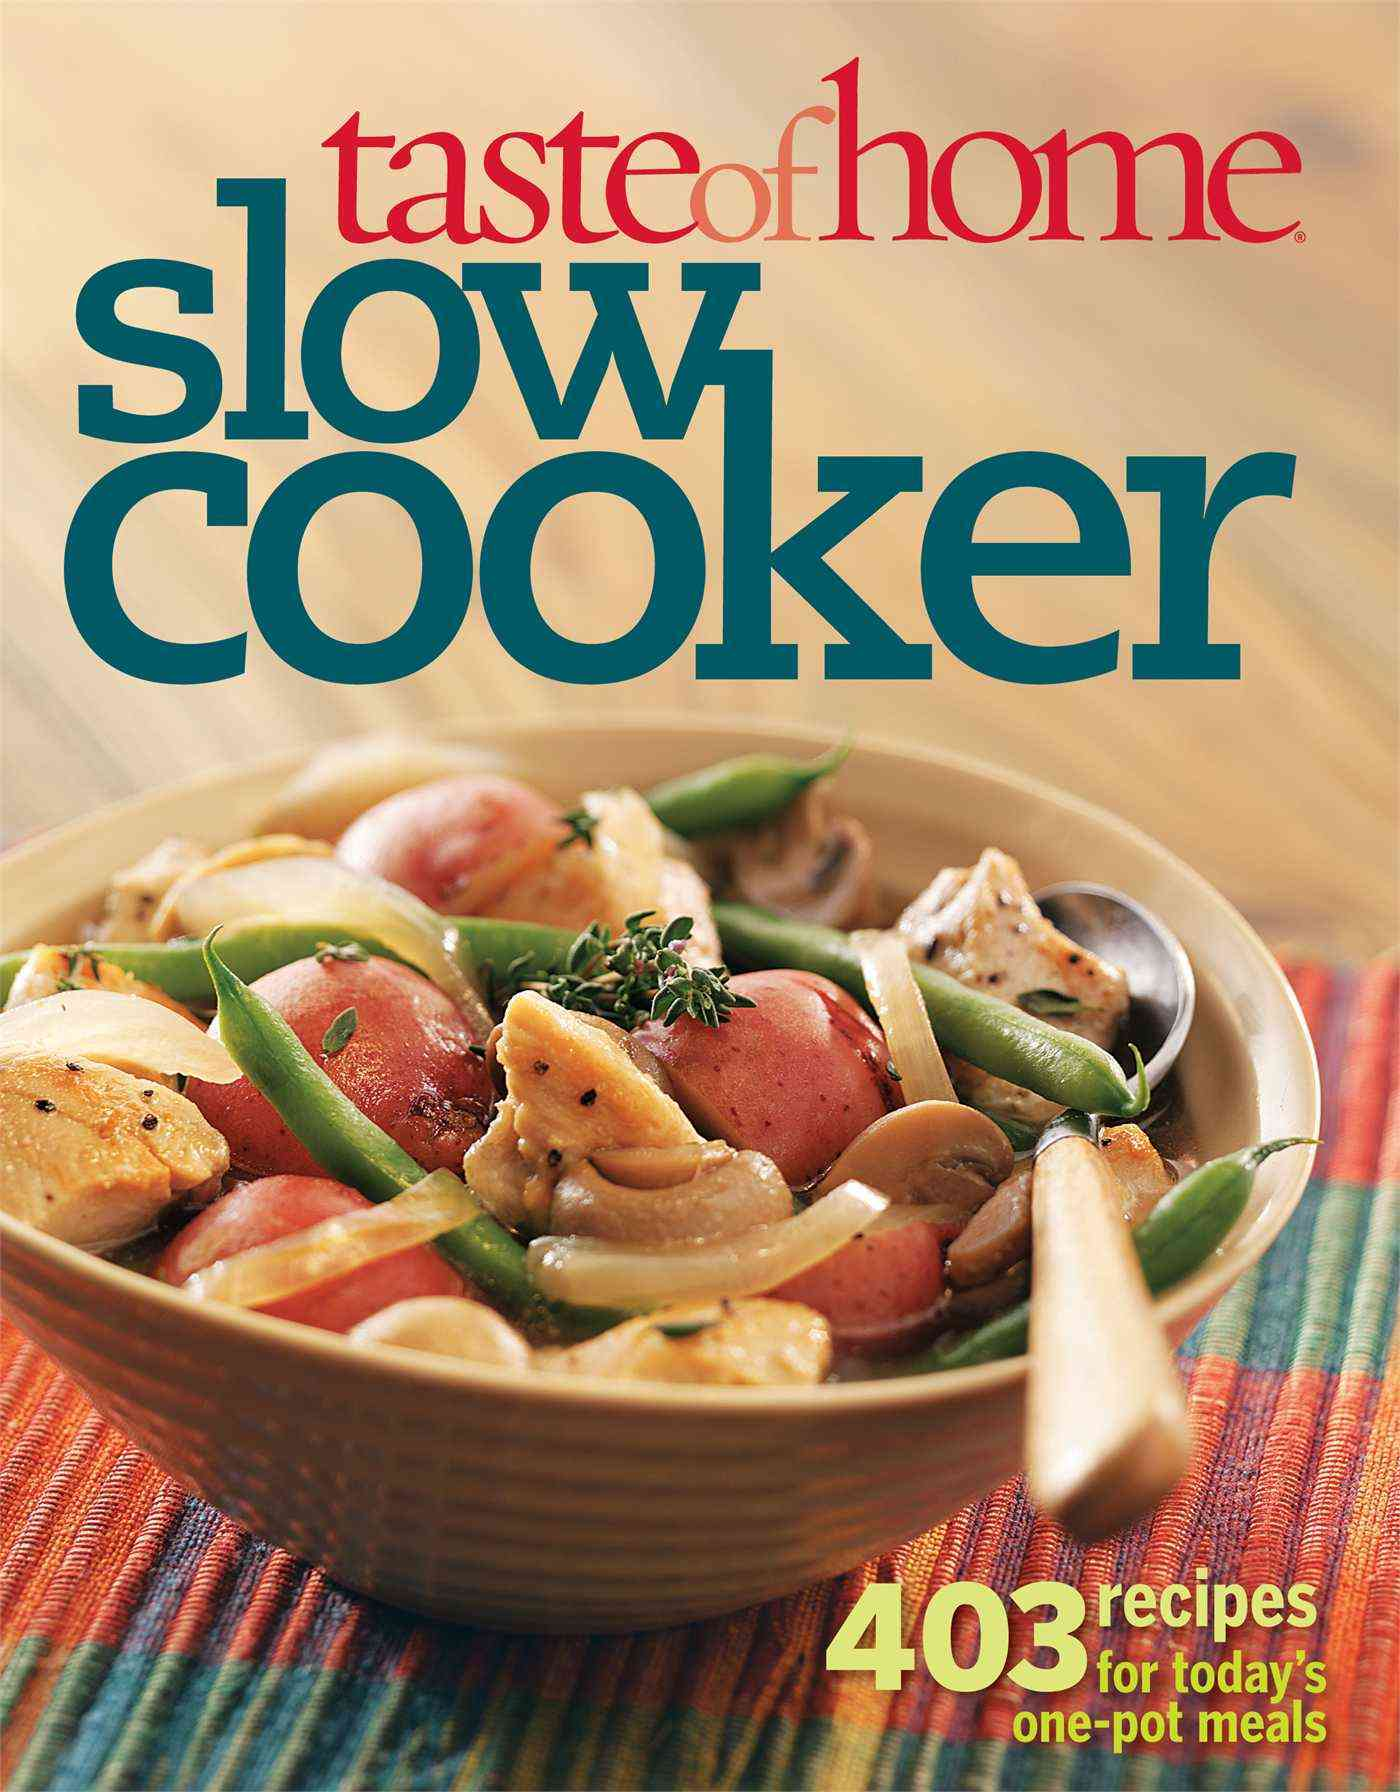 Taste of Home Slow Cooker: 403 Recipes for Today's One-Pot Meals (Paperback)